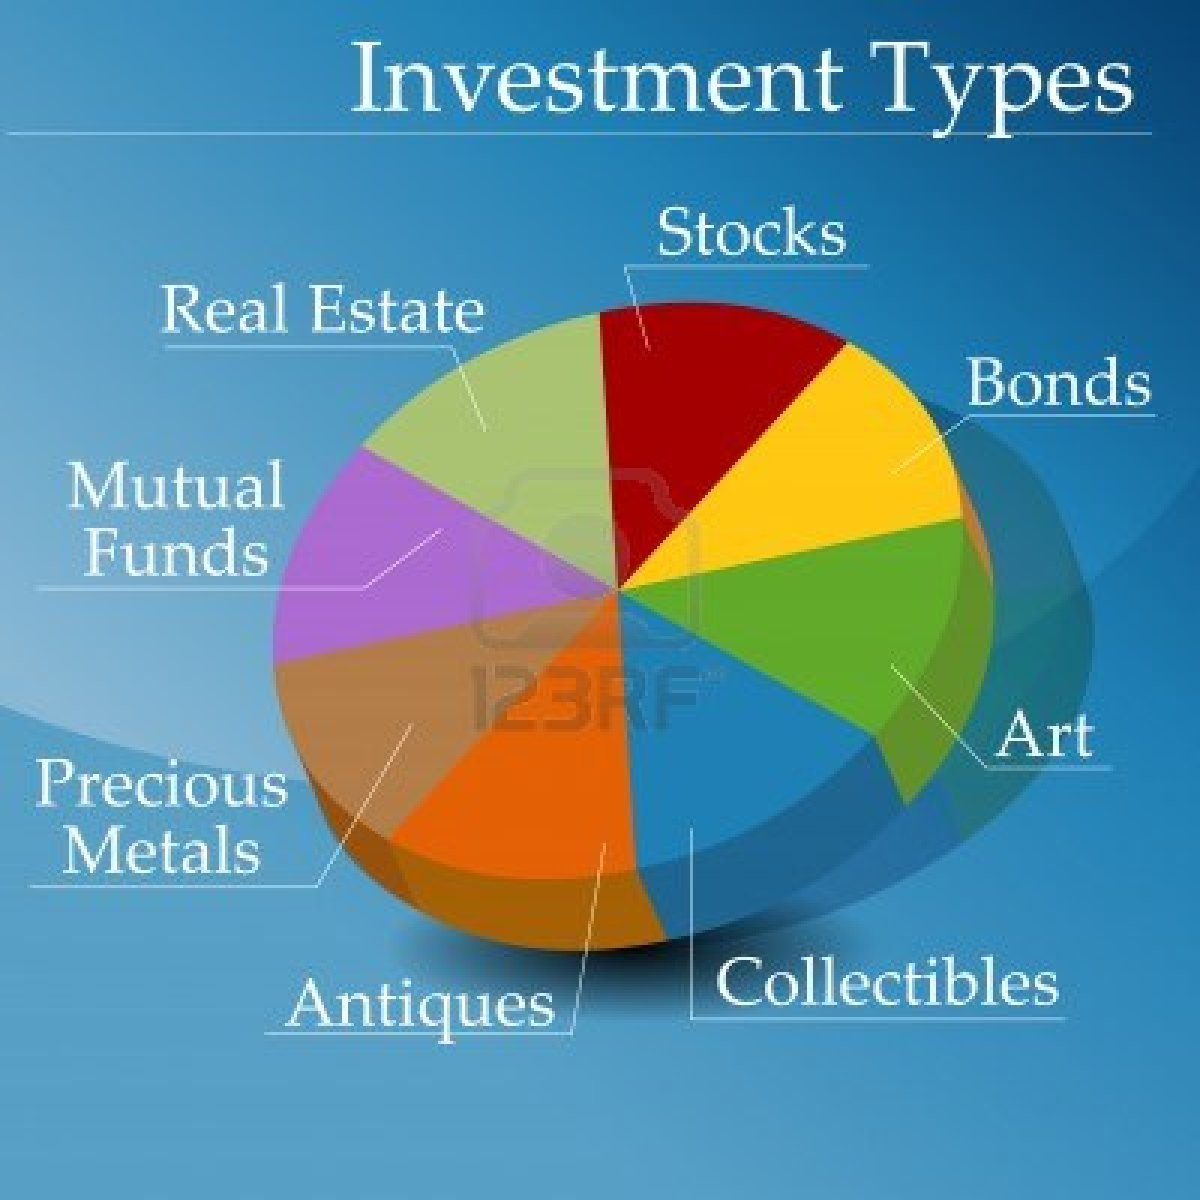 Investment options other than stocks